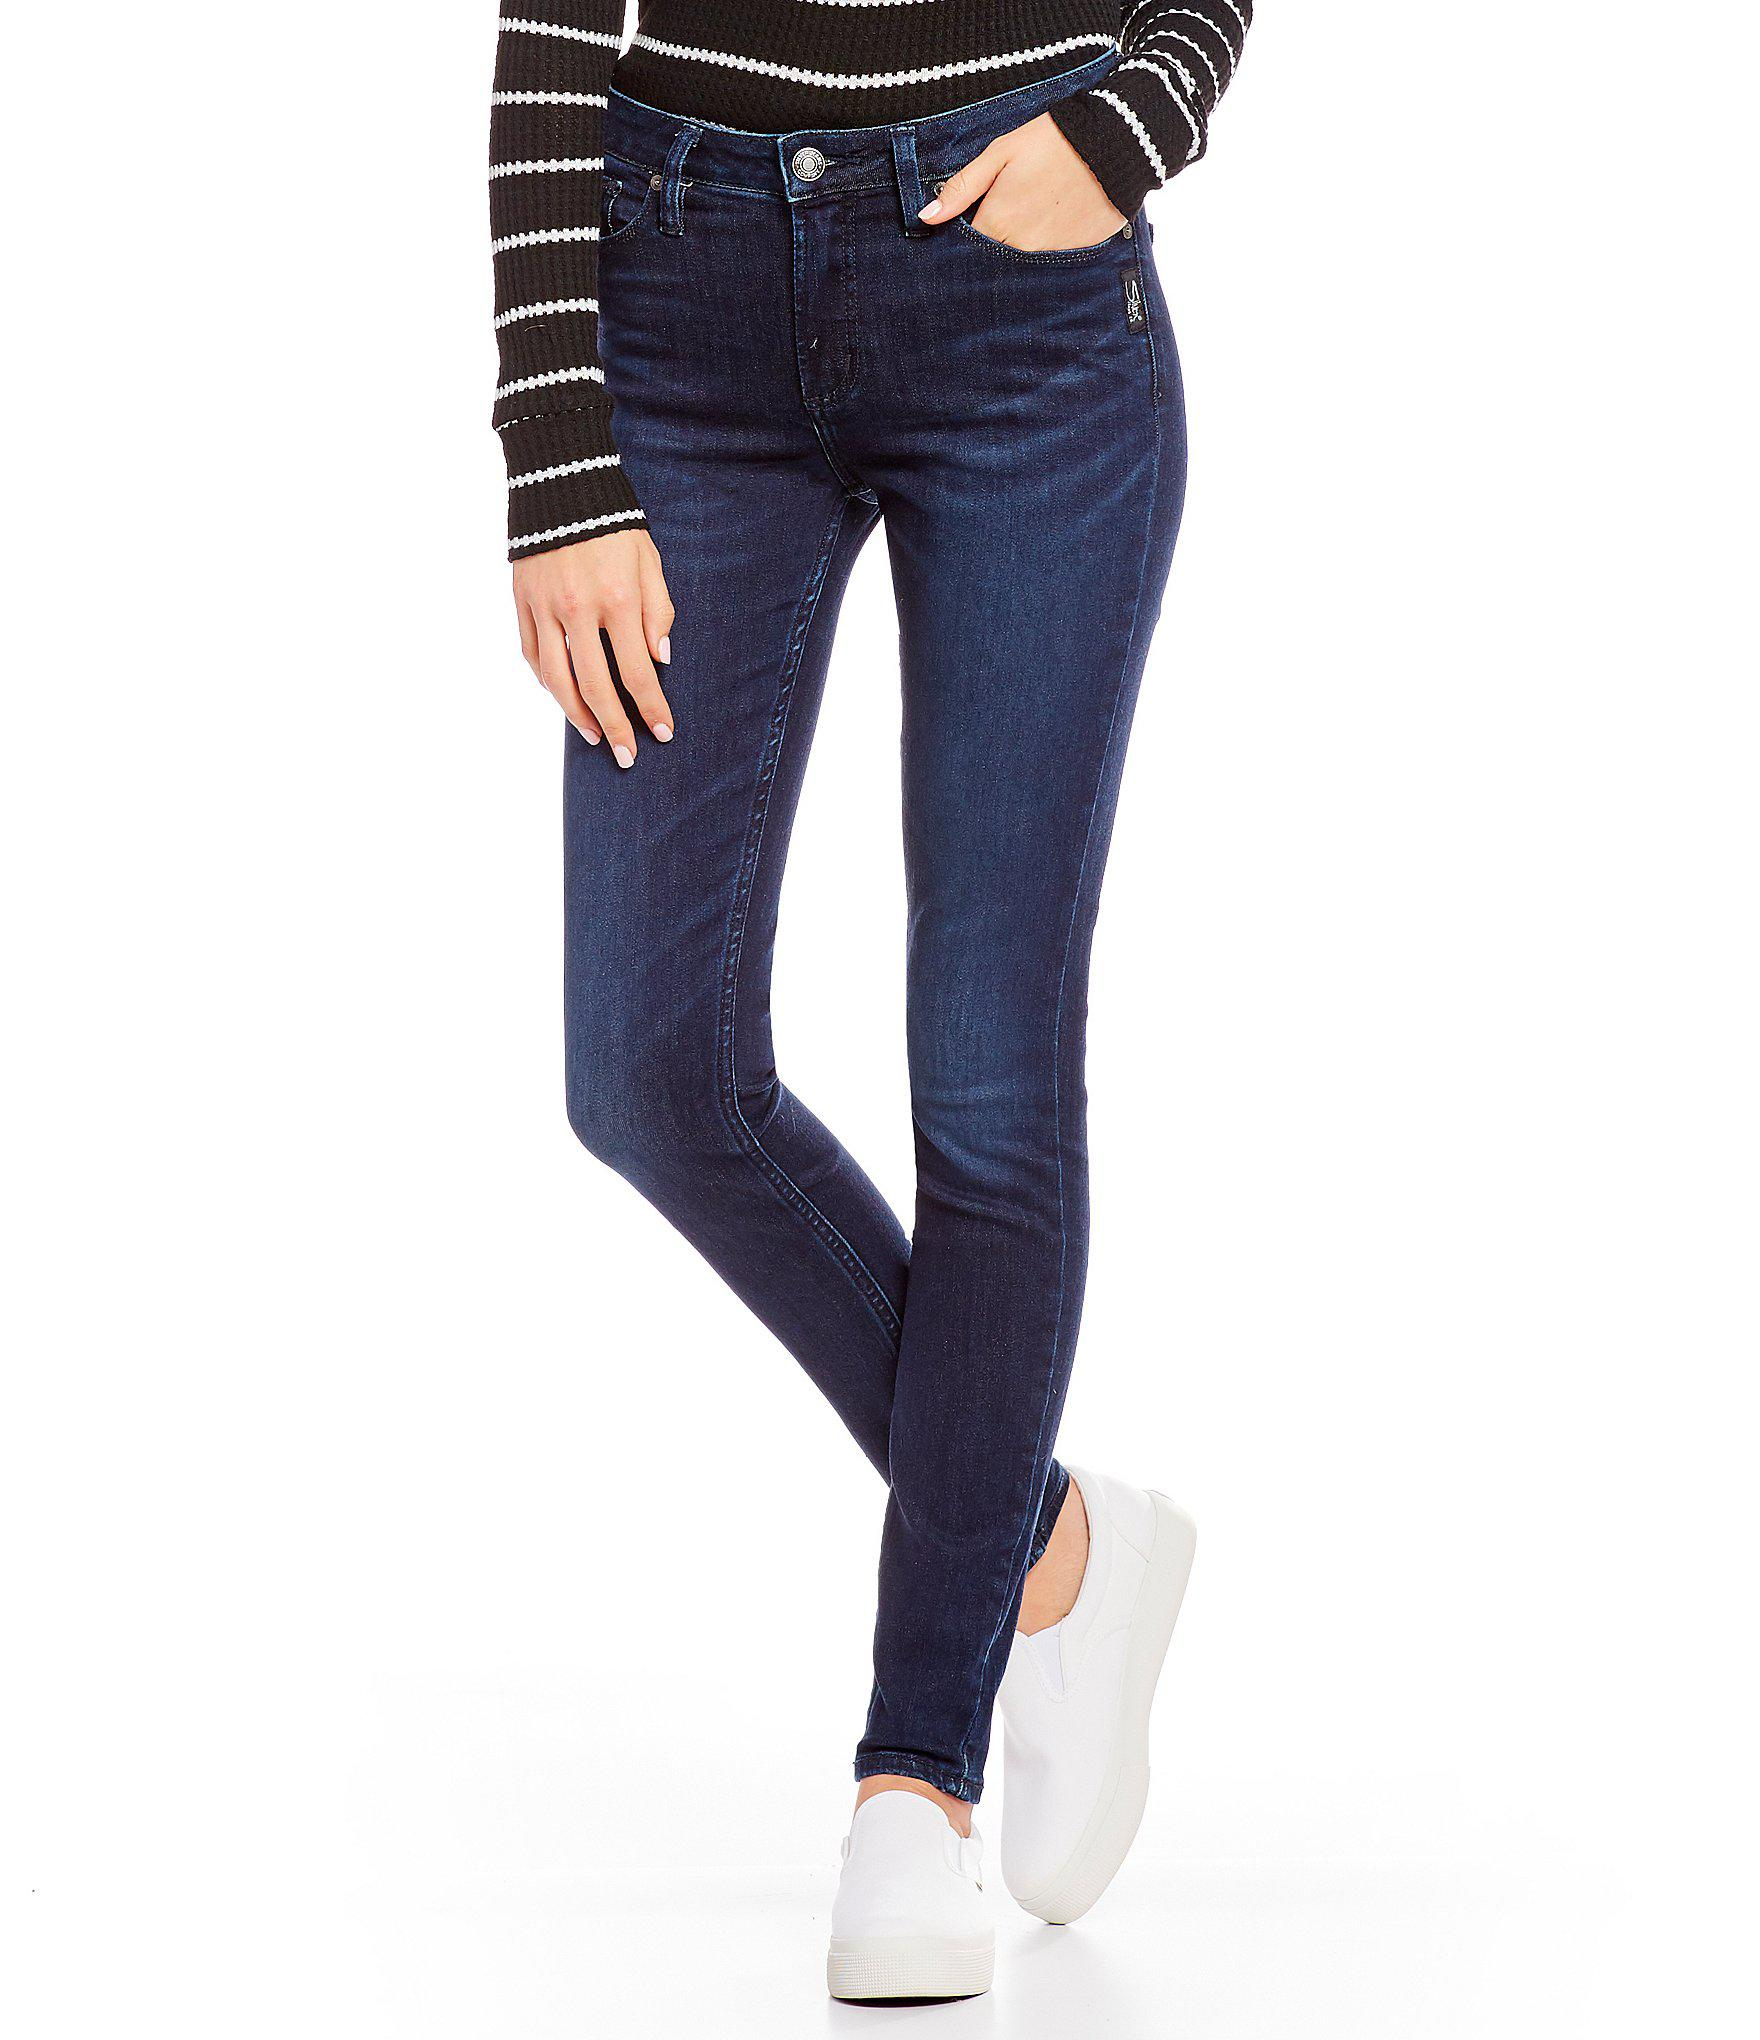 11f52d8e Gallery. Previously sold at: Dillard's · Women's Ombre Jeans ...